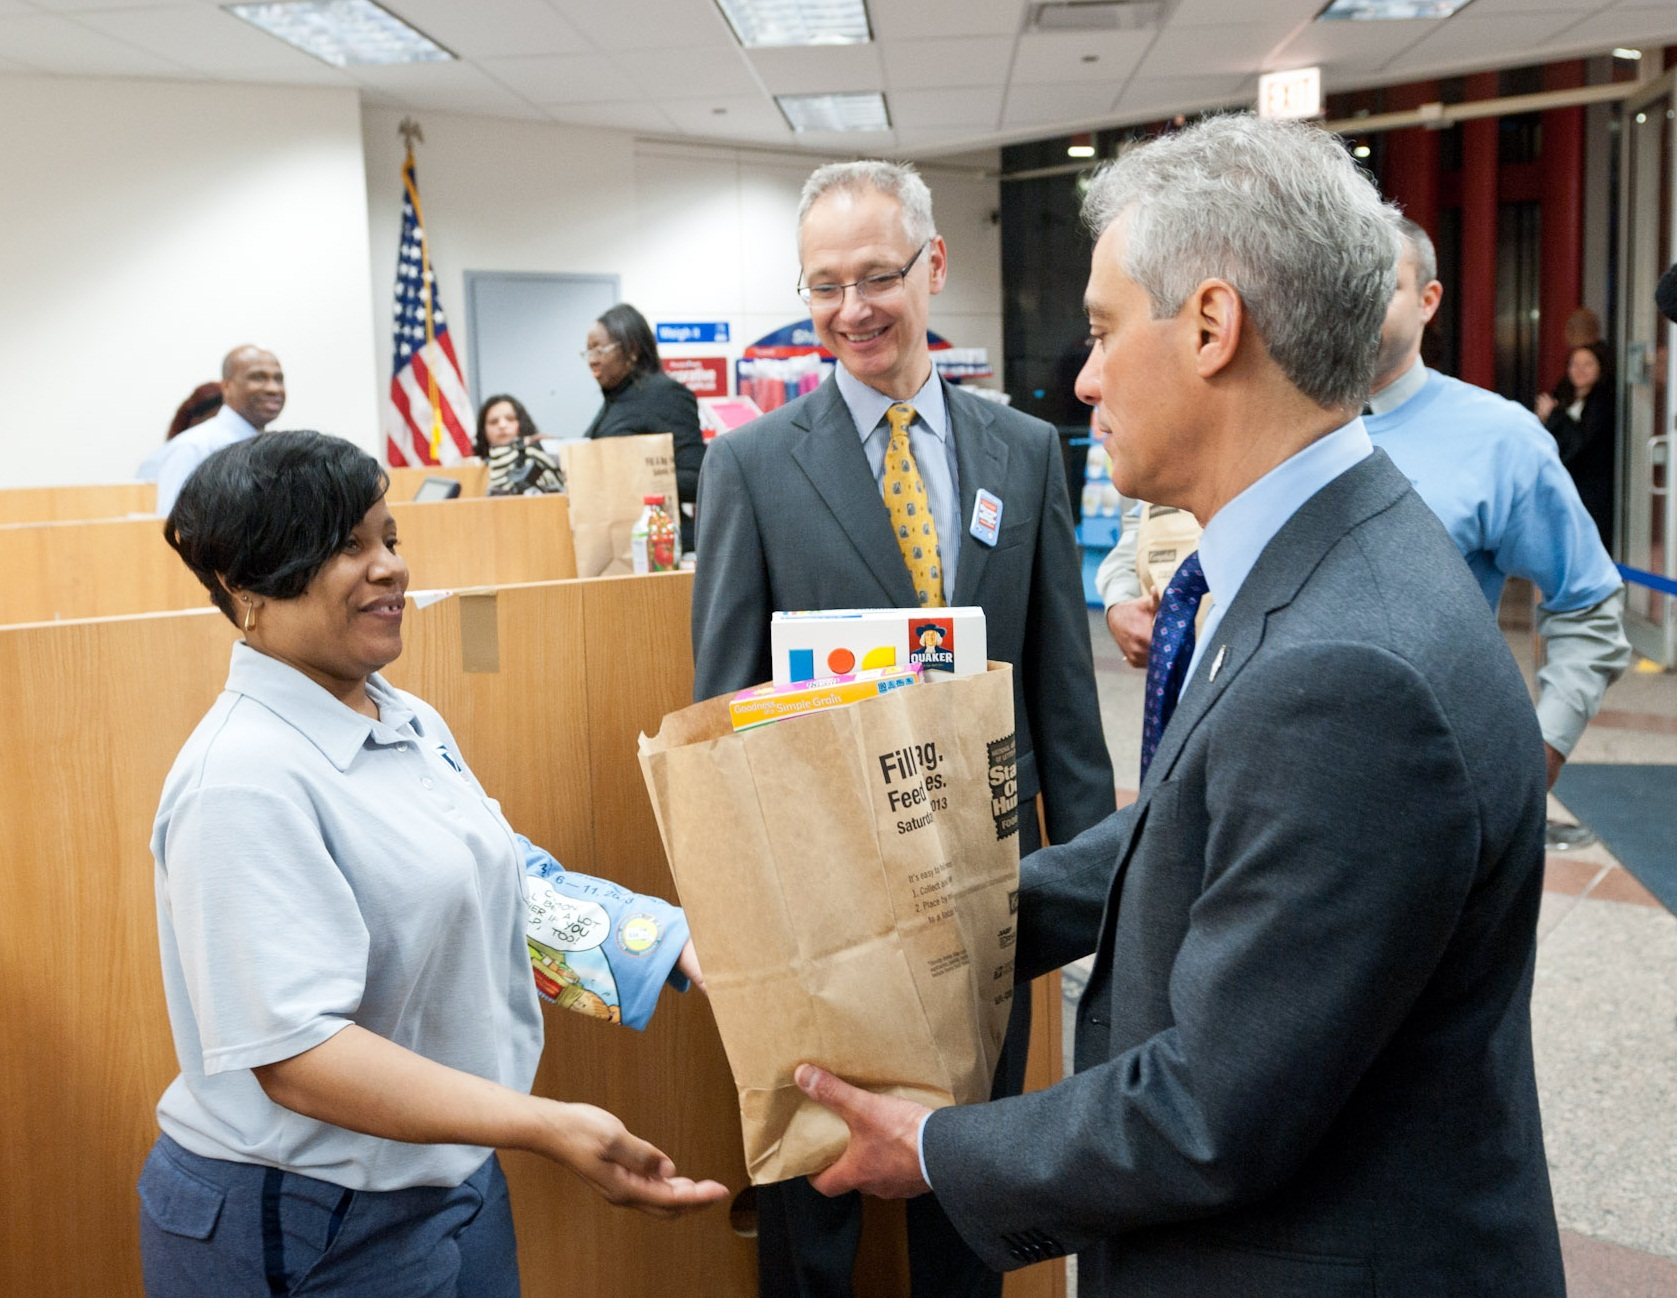 Mayor Emanuel Donates Food In Support of the Stamp Out Hunger food drive.